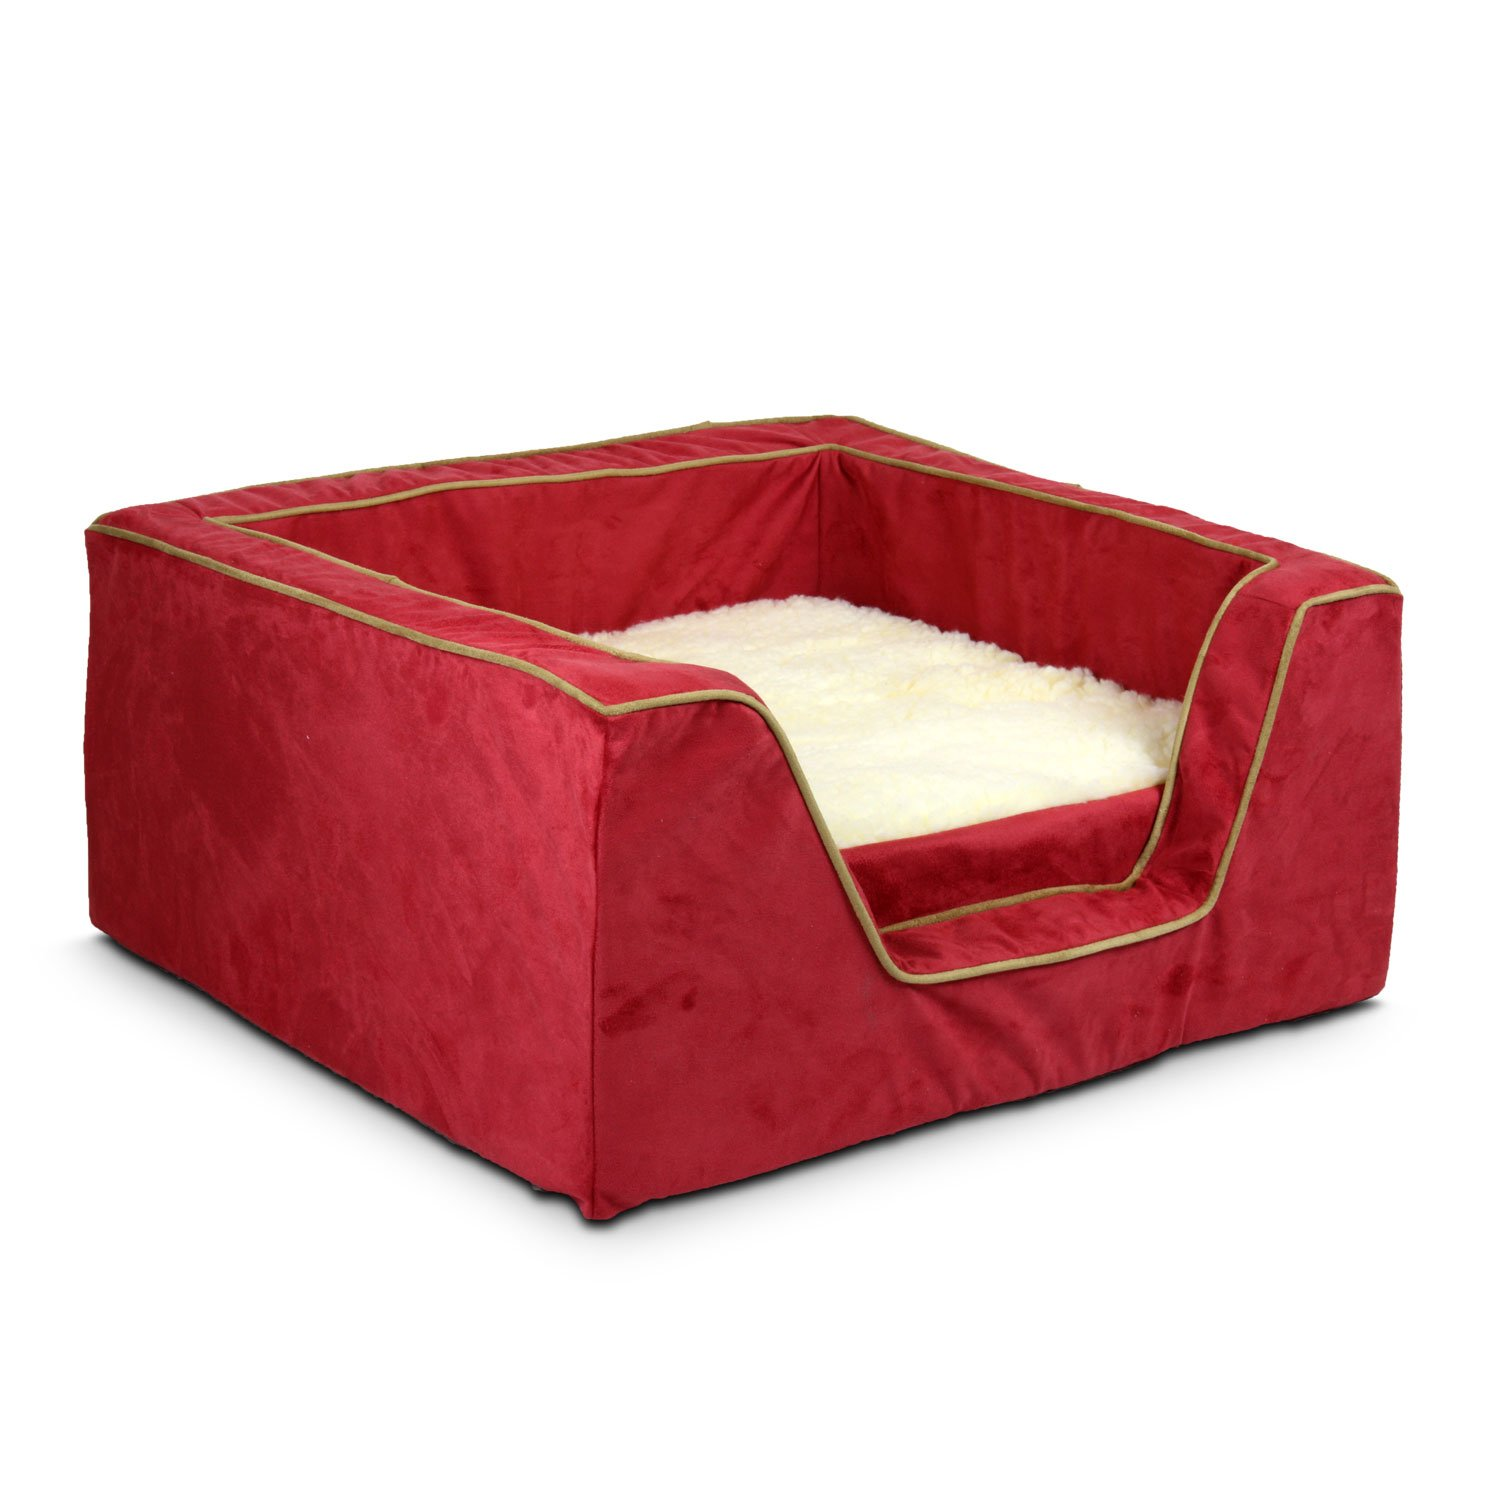 Marvelous Snoozer Luxury Square Bed With Memory Foam In Red With Camel Cording 27 L X 23 W Petco Download Free Architecture Designs Fluibritishbridgeorg